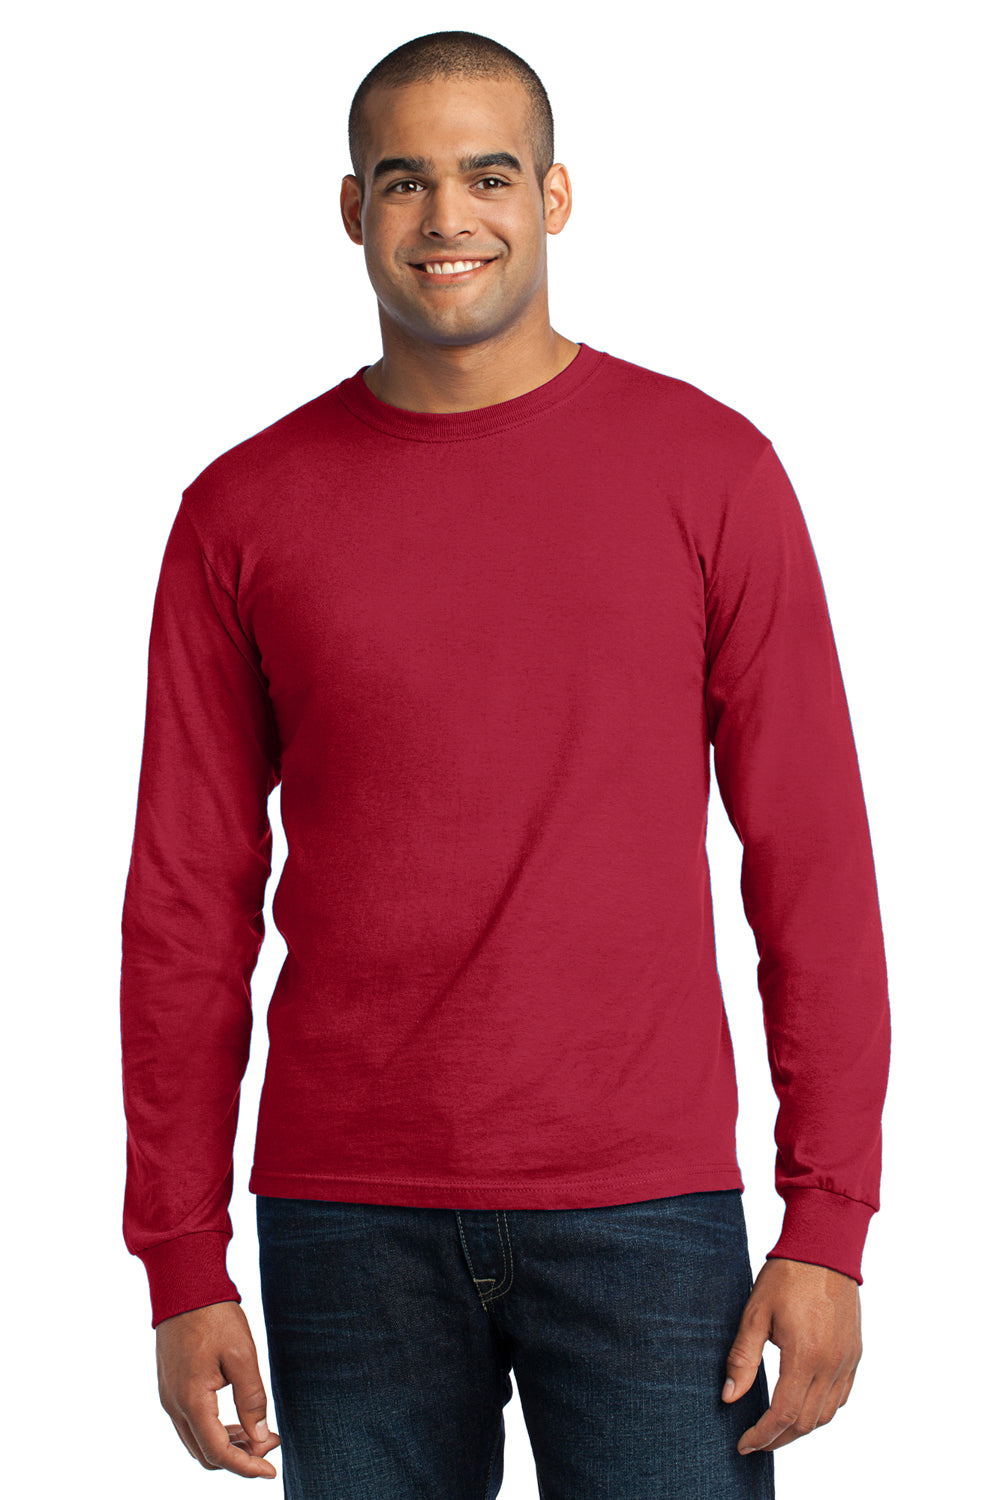 Port & Company USA100LS Mens USA Made Long Sleeve Crewneck T-Shirt Red Front